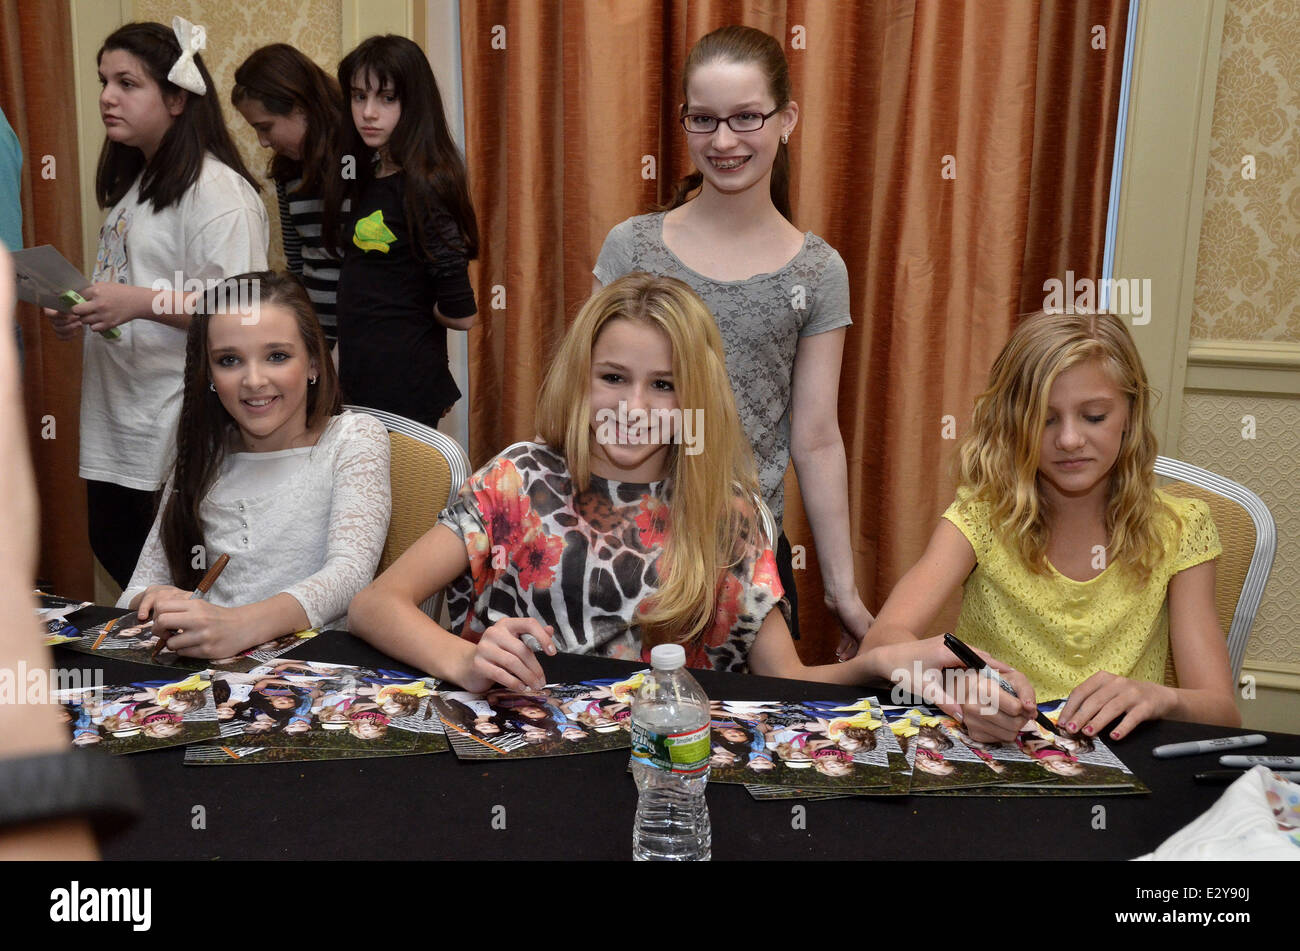 Cast members of the reality show dance moms attend a meet and cast members of the reality show dance moms attend a meet and greet at marriott downtown featuring kendall verteschloe lukasiakpaige hyland where m4hsunfo